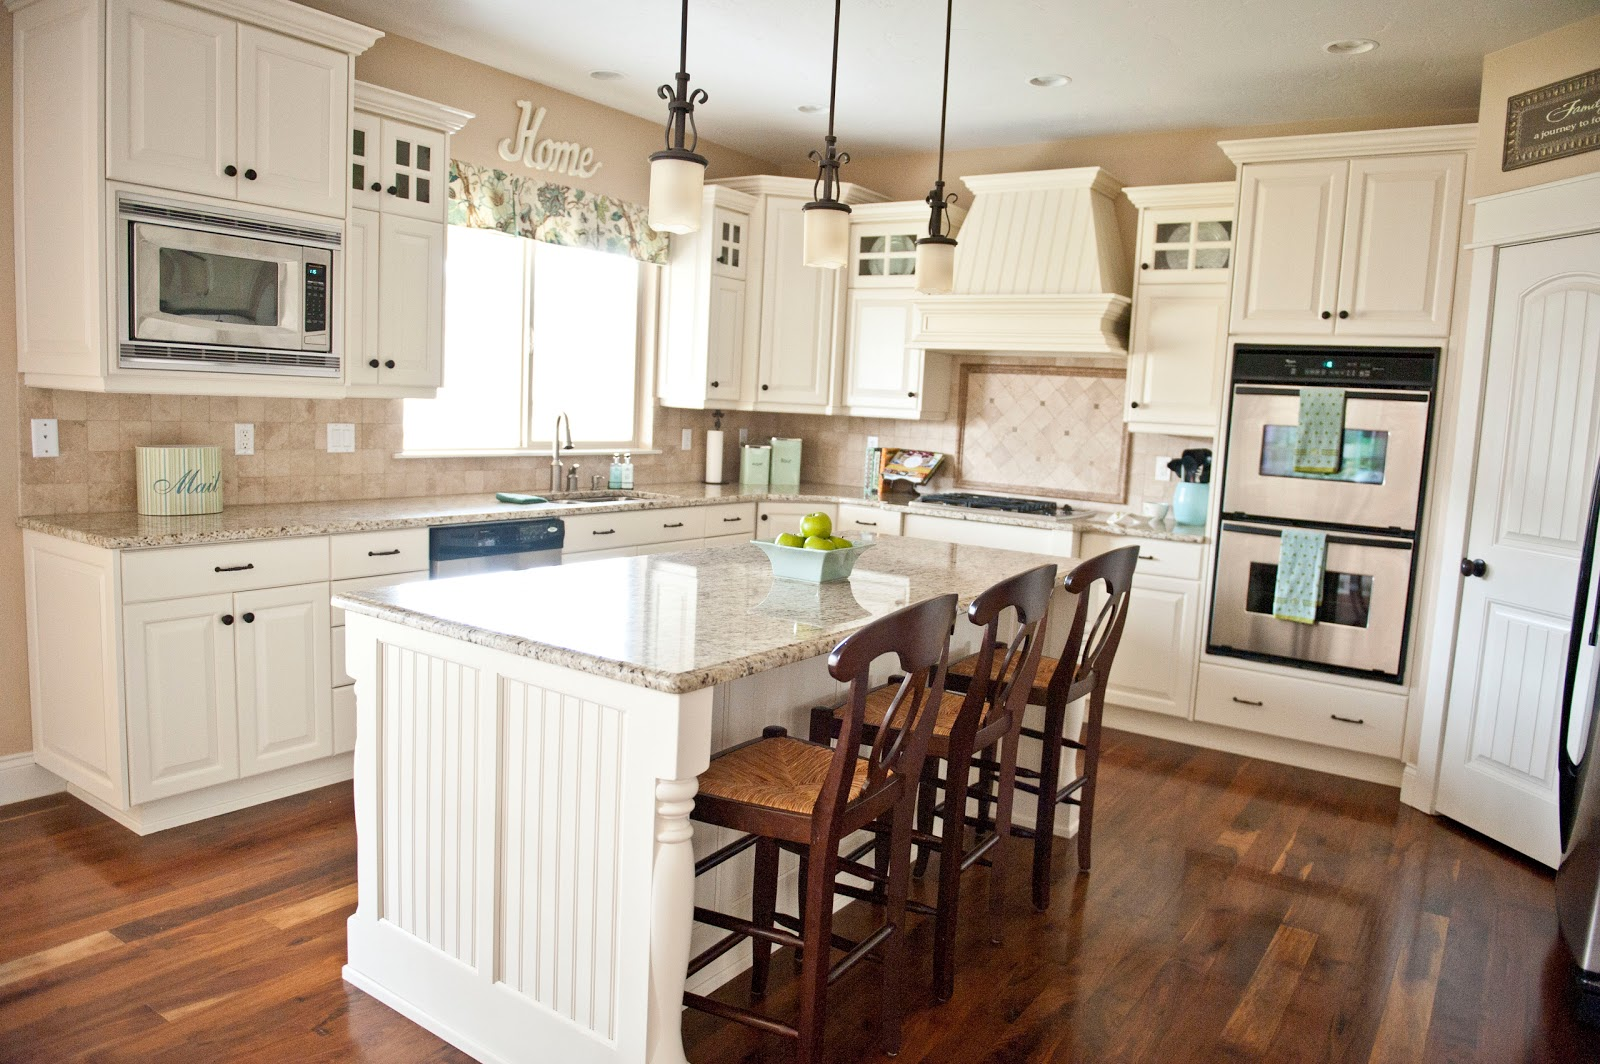 My home tour kitchen sita montgomery interiors for Painting wood kitchen cabinets white